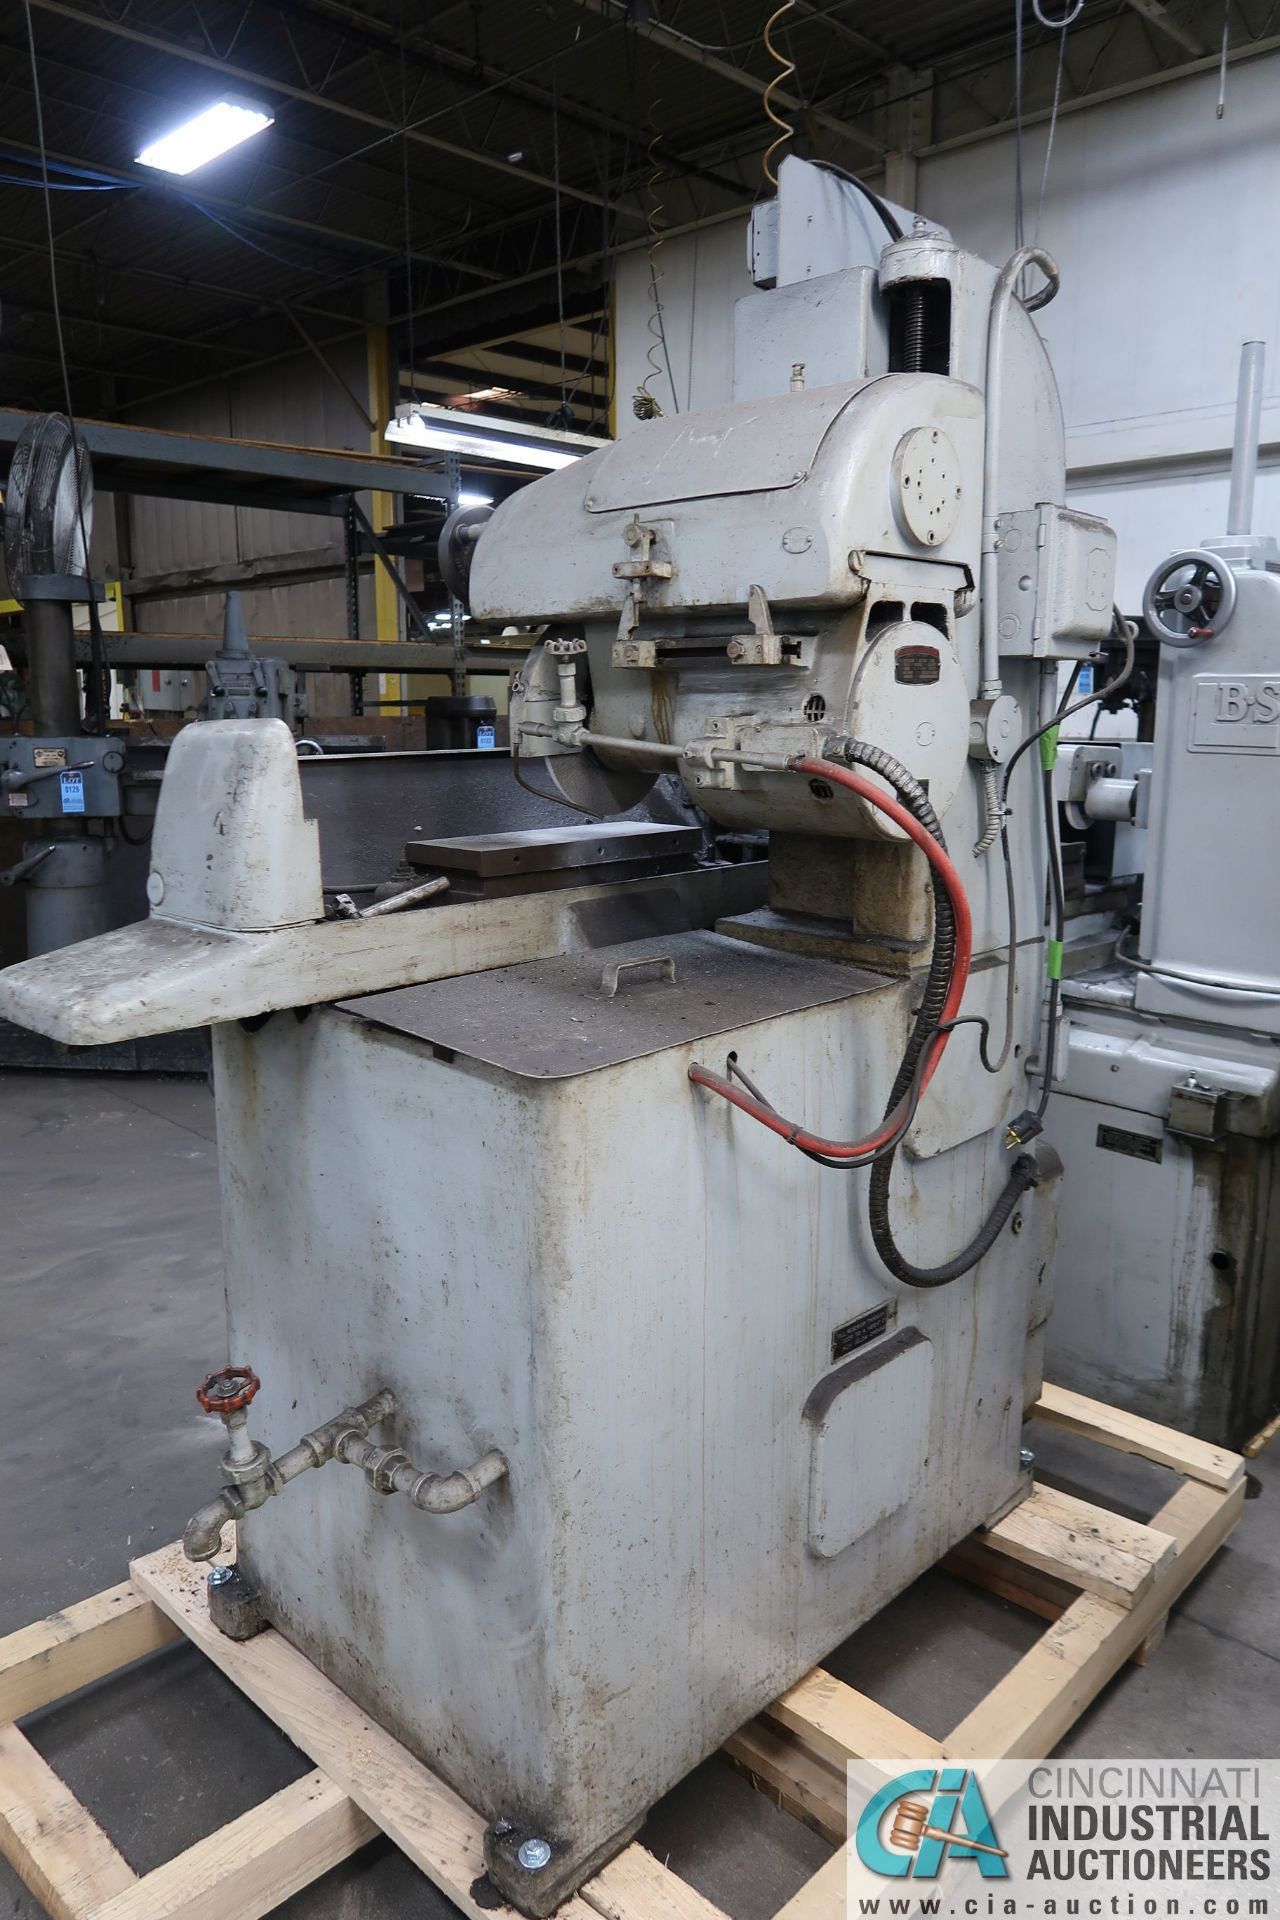 """6"""" X 18"""" THOMPSON HAND FEED SURFACE GRINDER; S/N F46258, 220 VOLTS, 3-PHASE, 1-1/2 HP MOTOR - Image 9 of 10"""